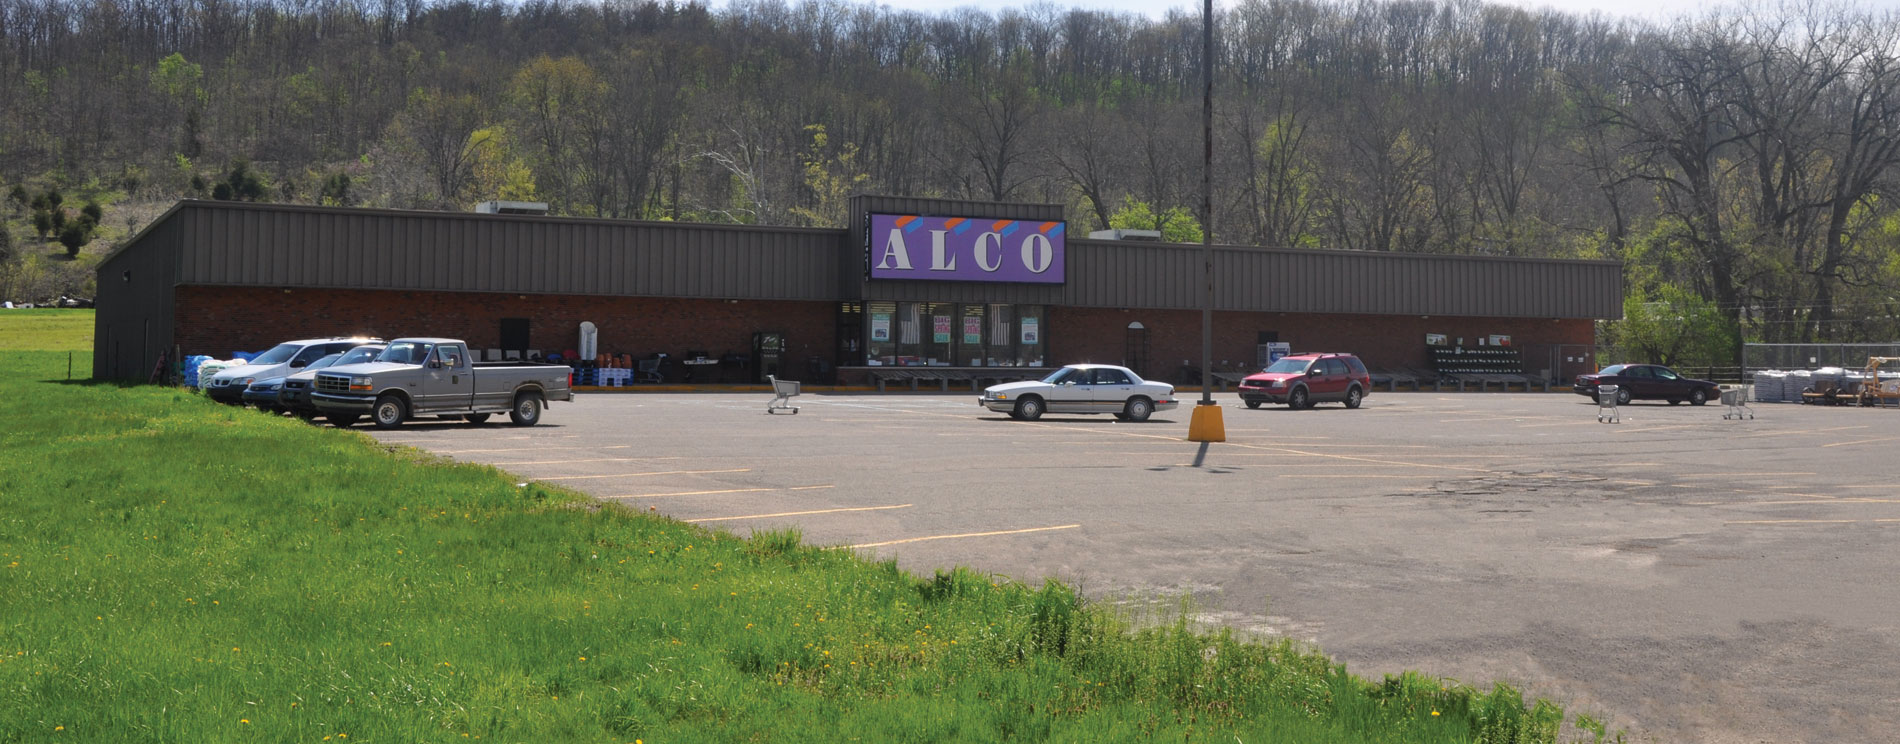 Single Tenant Retail of Brookville Former ALCO